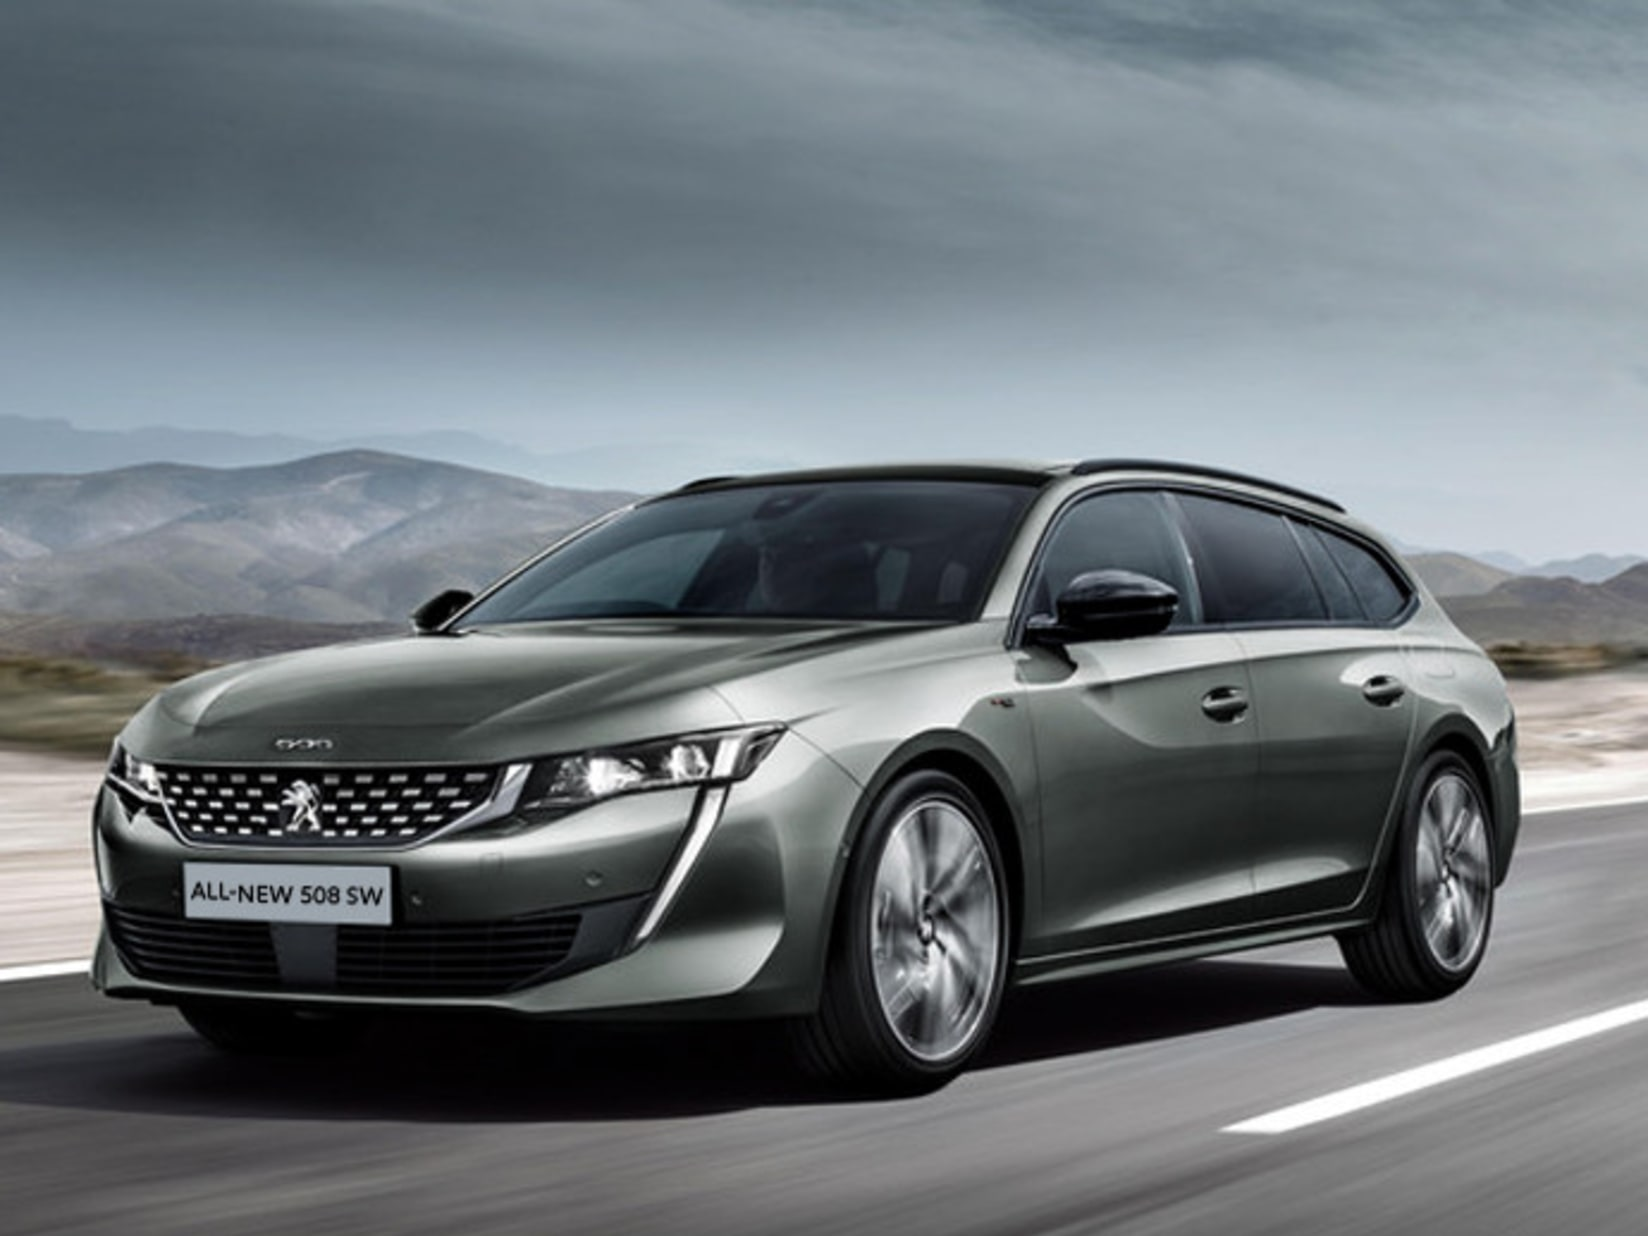 New Peugeot 508 Sw To Launch Early 2019 Booths Of Ditton Peugeot